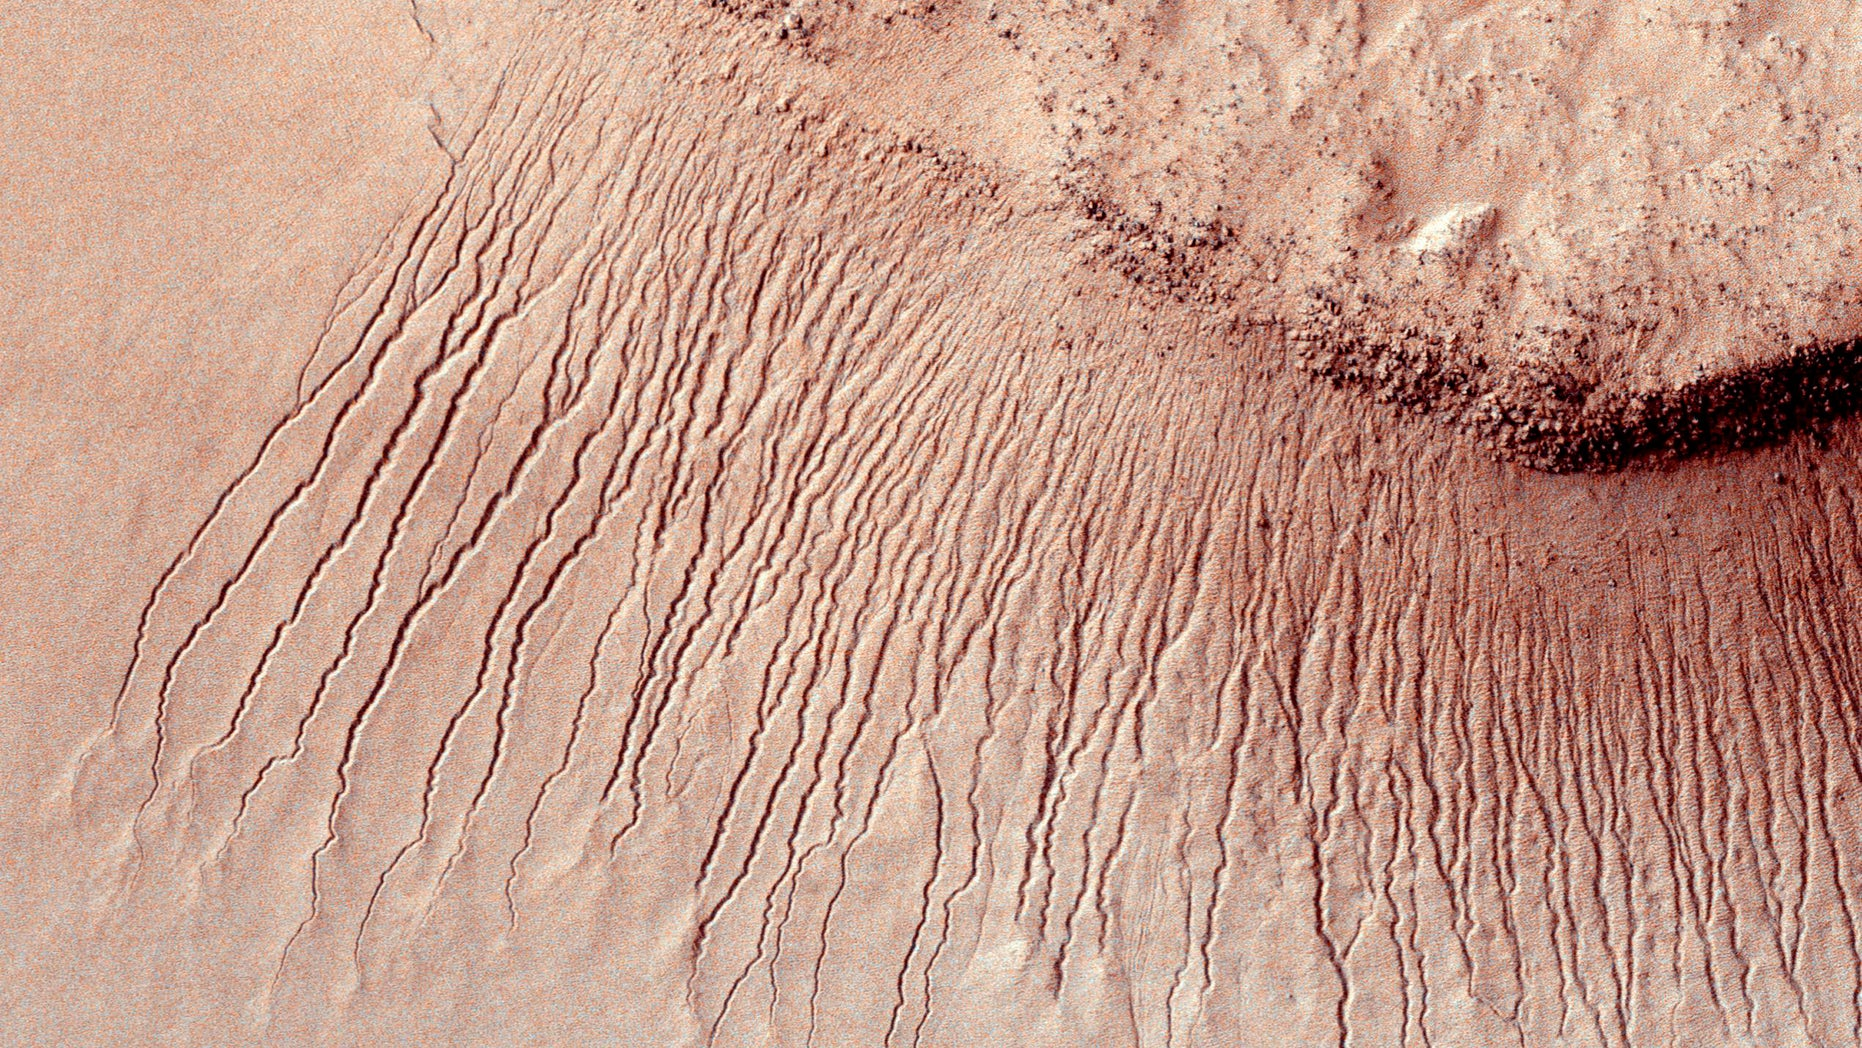 Portions of the Martian surface shot by NASA's Mars Reconnaissance Orbiter show many channels from 1 meter to 10 meters wide on a scarp in the Hellas impact basin, in this photograph taken January 14, 2011. (REUTERS/NASA/JPL-Caltech/Univ. of Arizona/Handout)